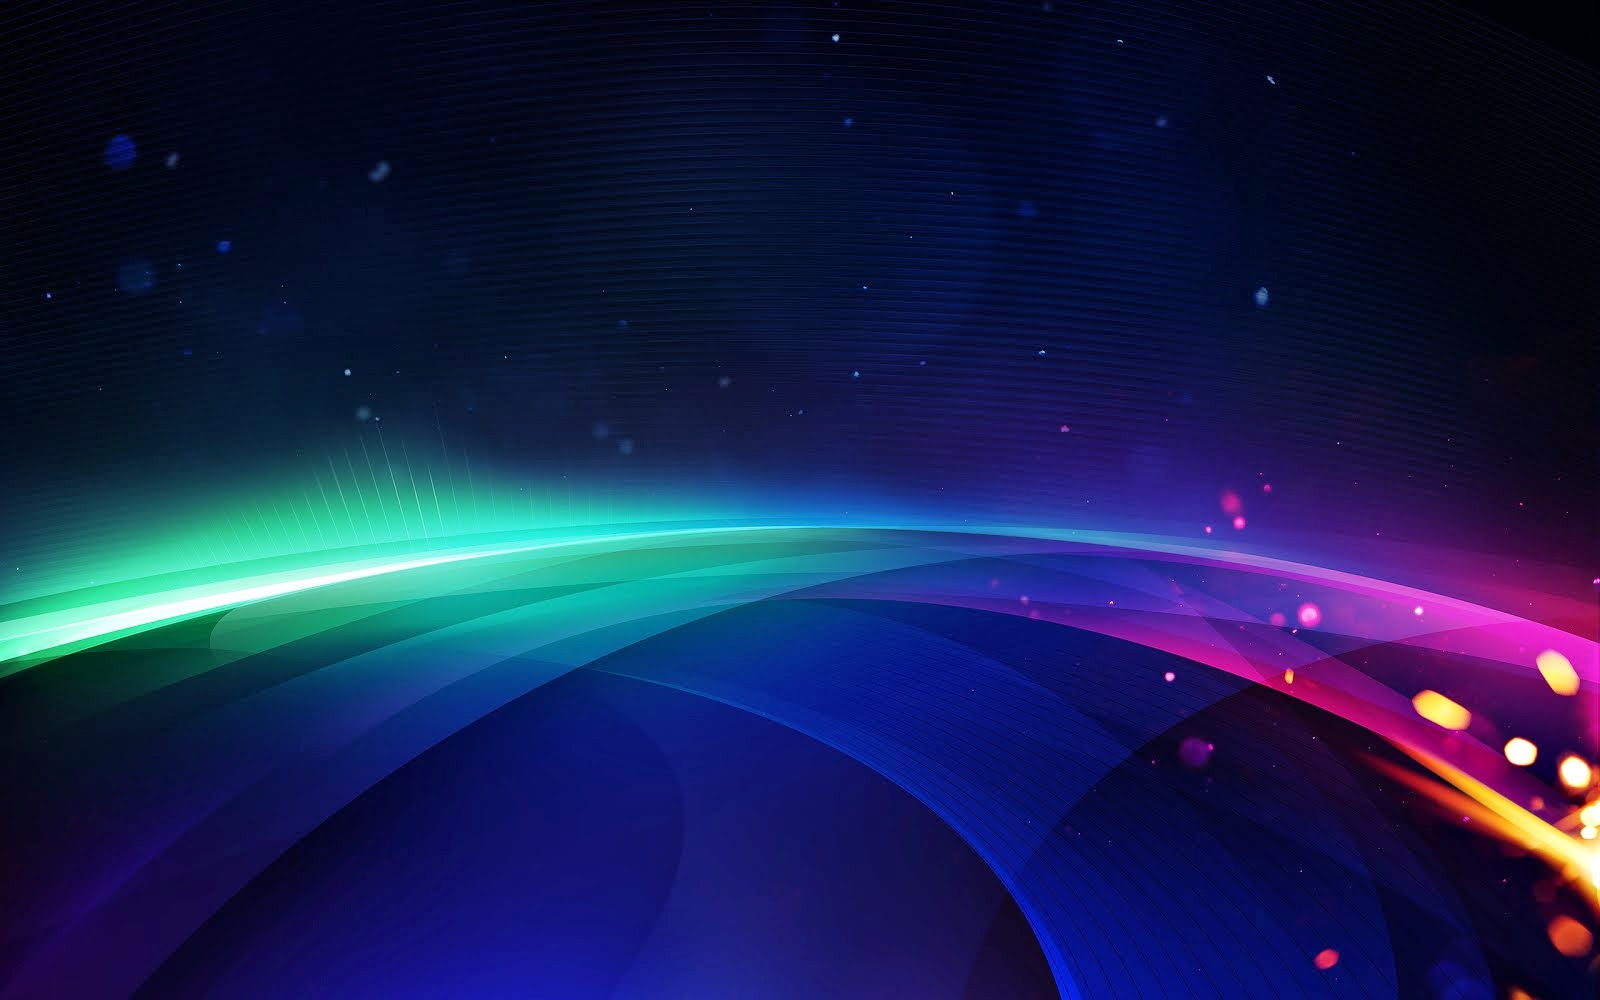 Abstract space wallpaper space wallpaper - Space wallpaper desktop ...